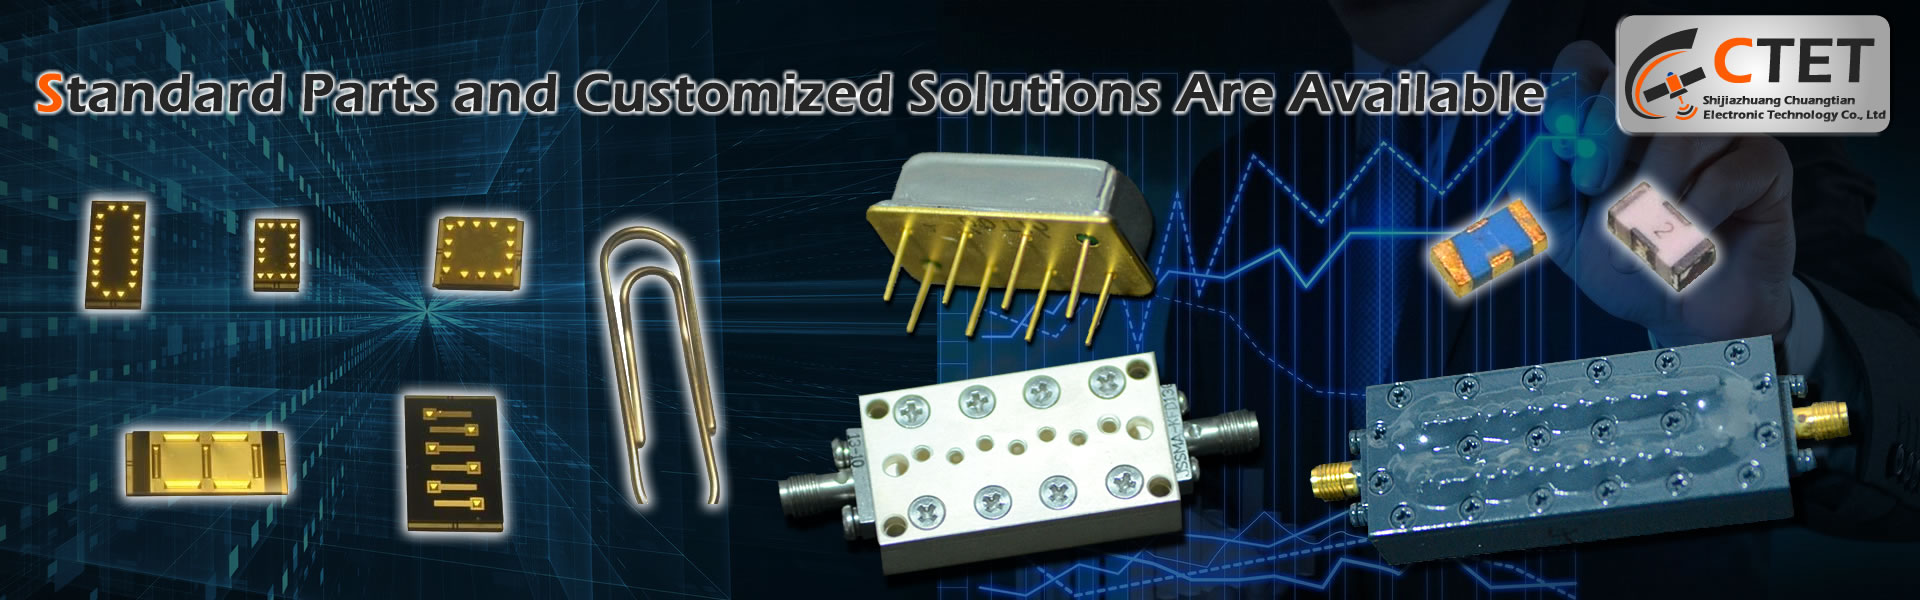 Standard Parts and Customized Solutions Are Available